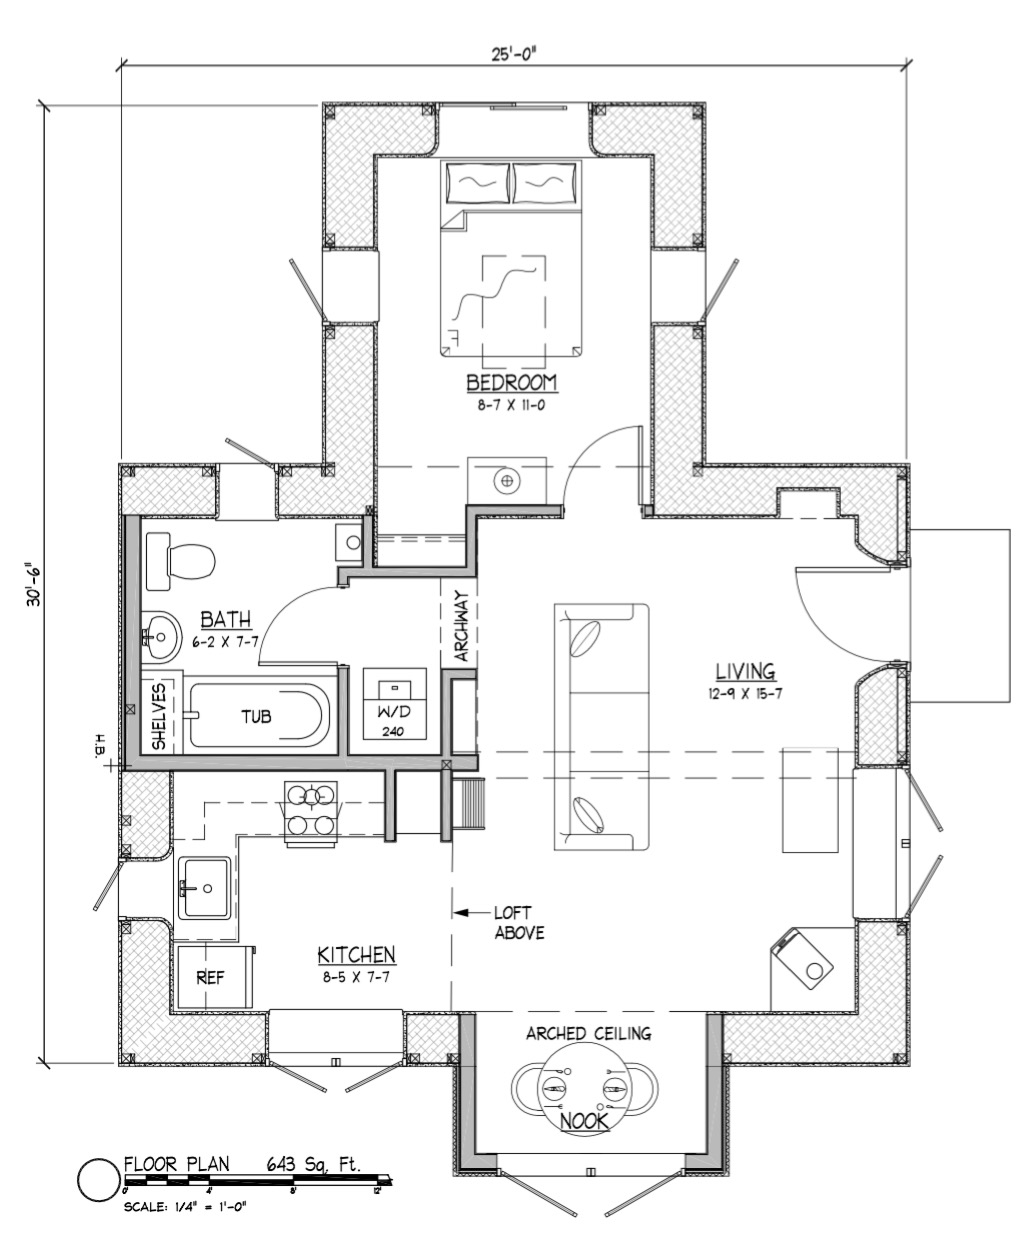 Applegate straw bale cottage plans for Straw bale house cost per square foot